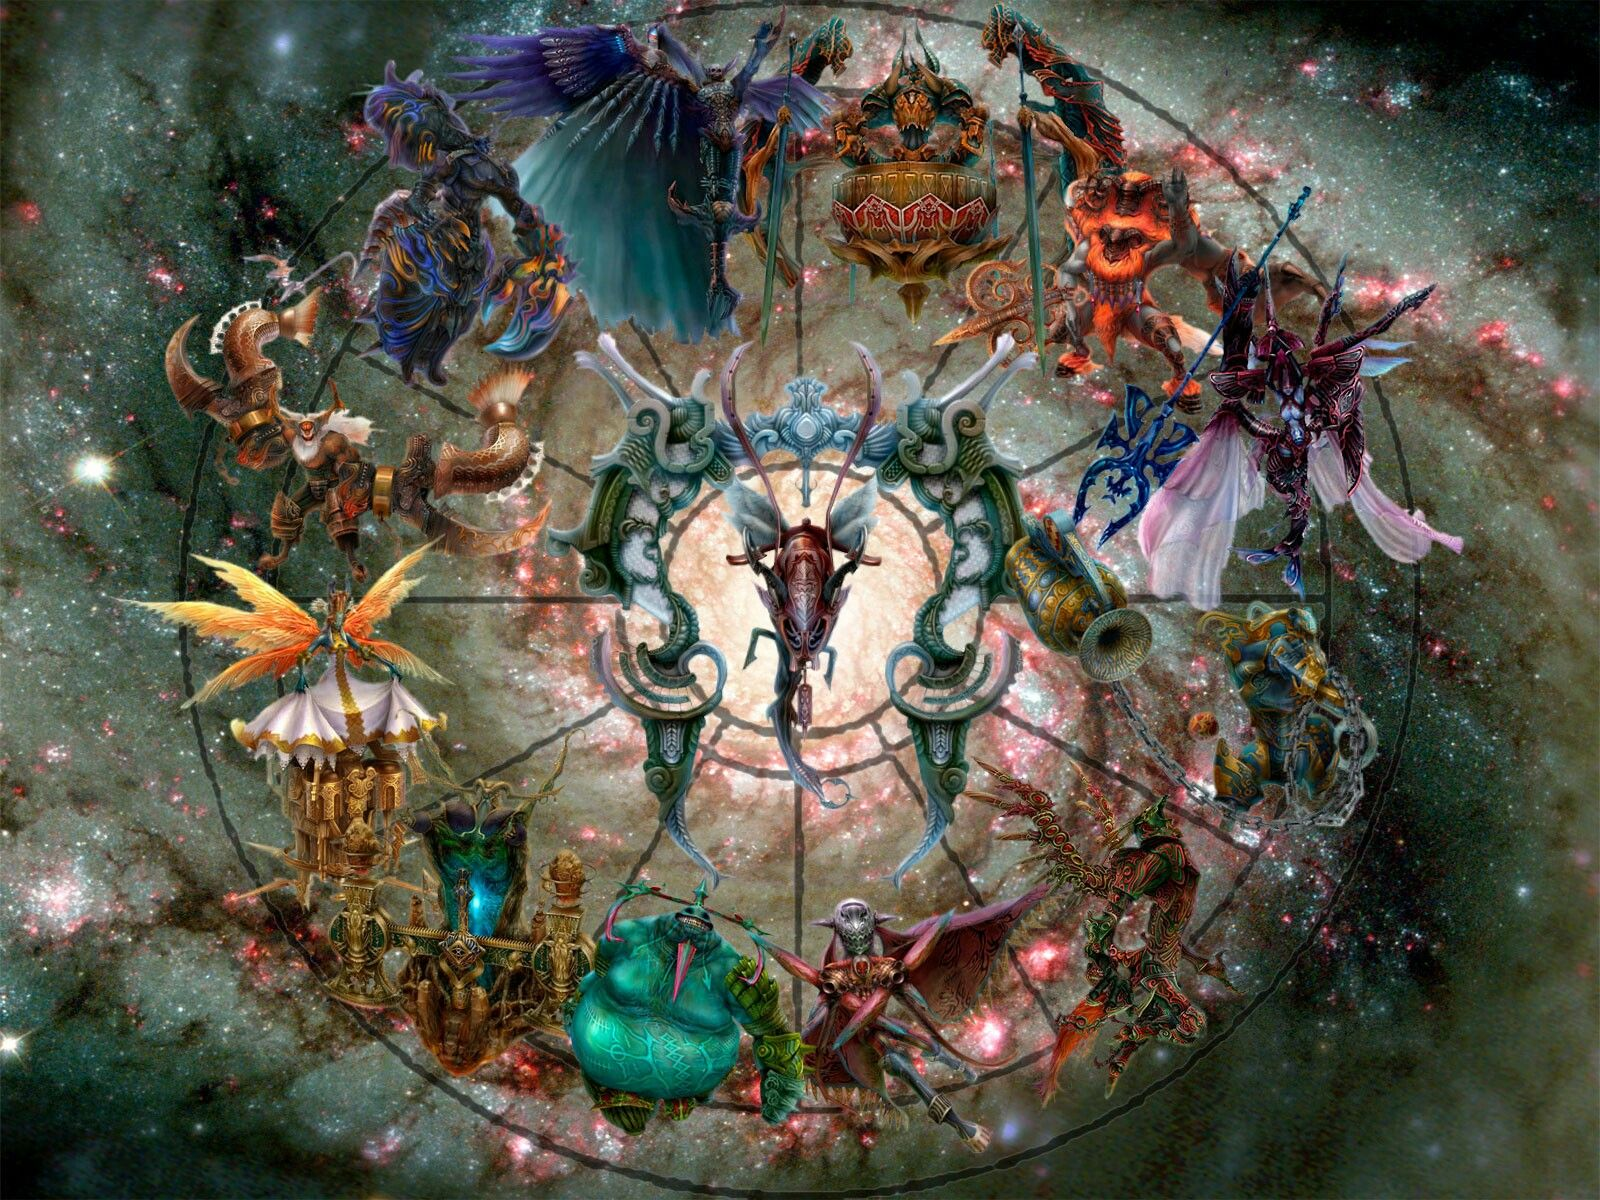 Astrology Wallpaper Download Free Final Fantasy Xii Astrology